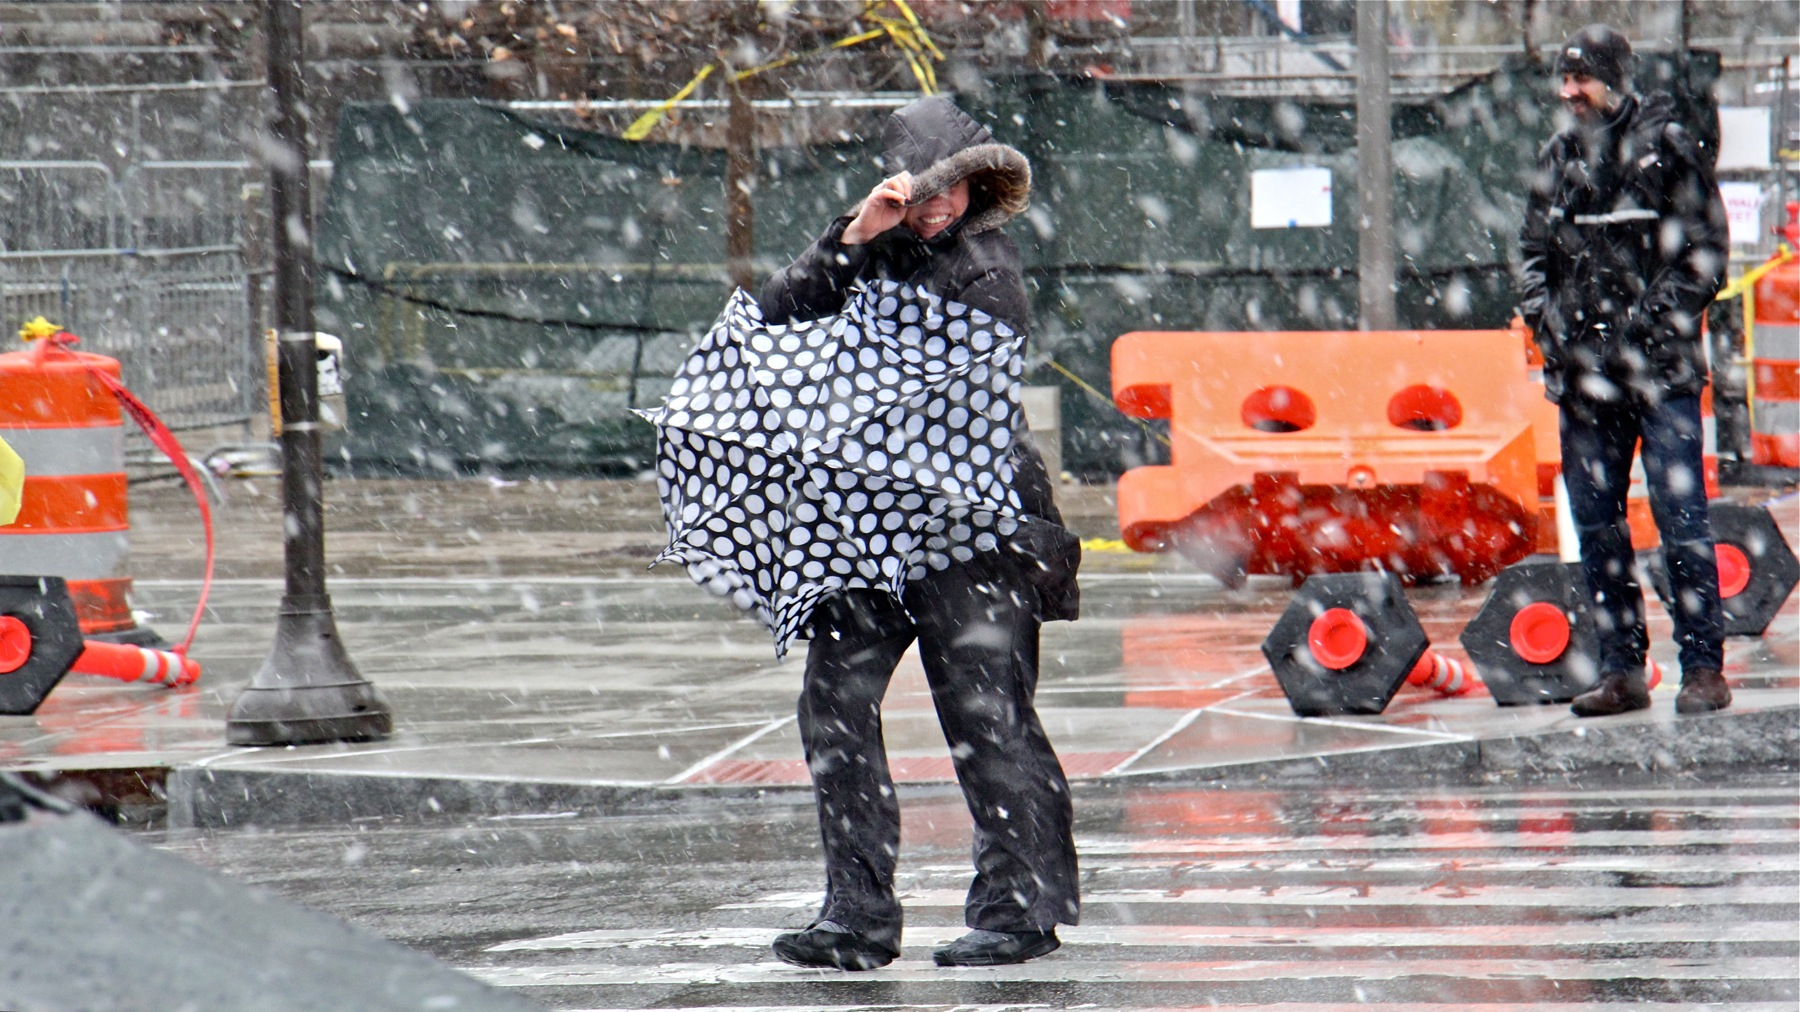 A pedestrian in Center City struggles against the strong winds and pelting snow.